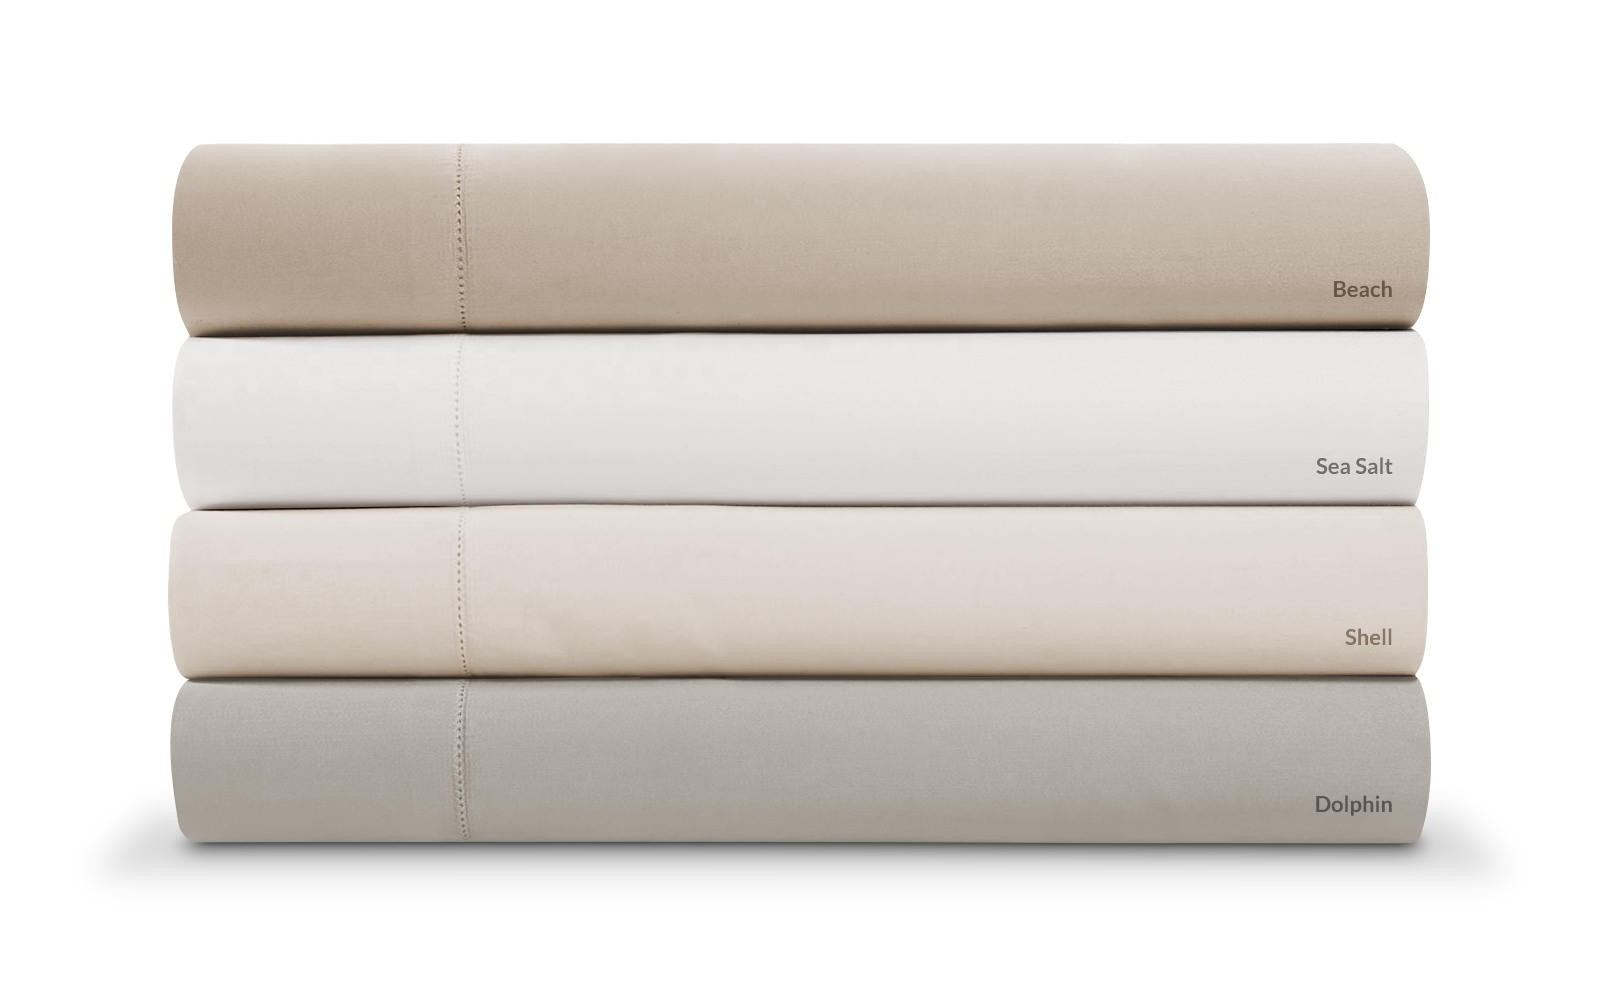 Mattress Buying Guide – How To Choose The Best Suited Mattress In 5 Easy Steps